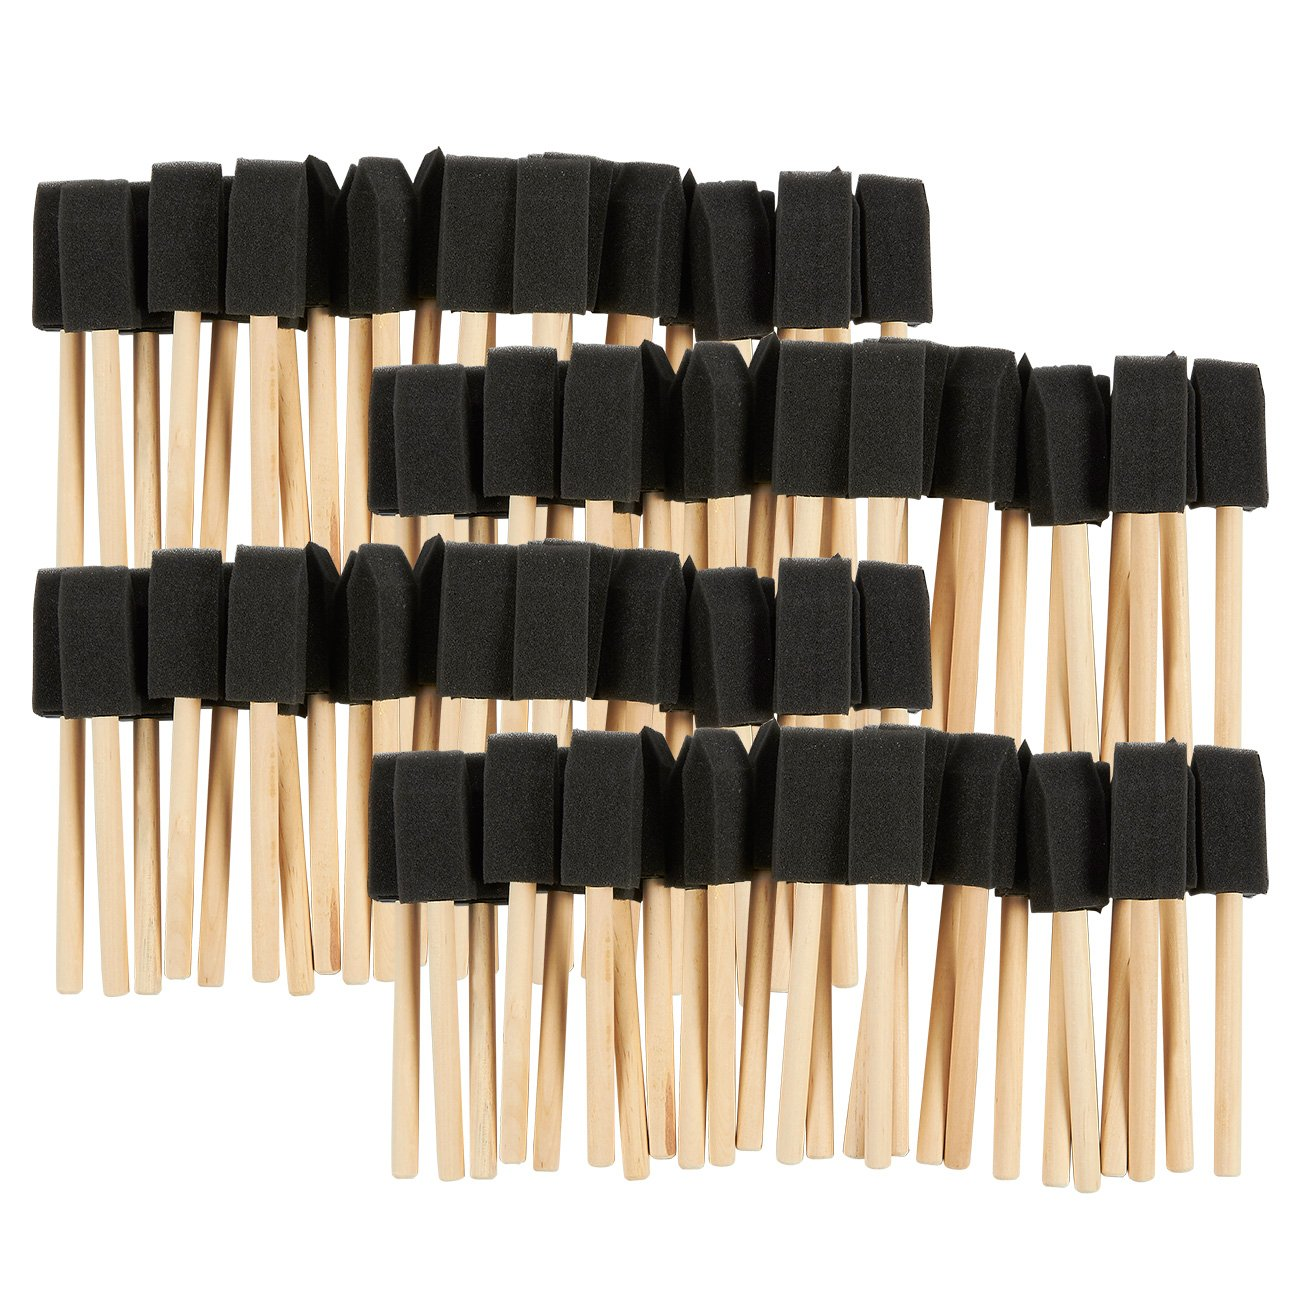 Juvale Pack of 100 1-Inch Foam Paint Brush Set - Value Pack - Great for Acrylics, Stains, Varnishes, Crafts, Art